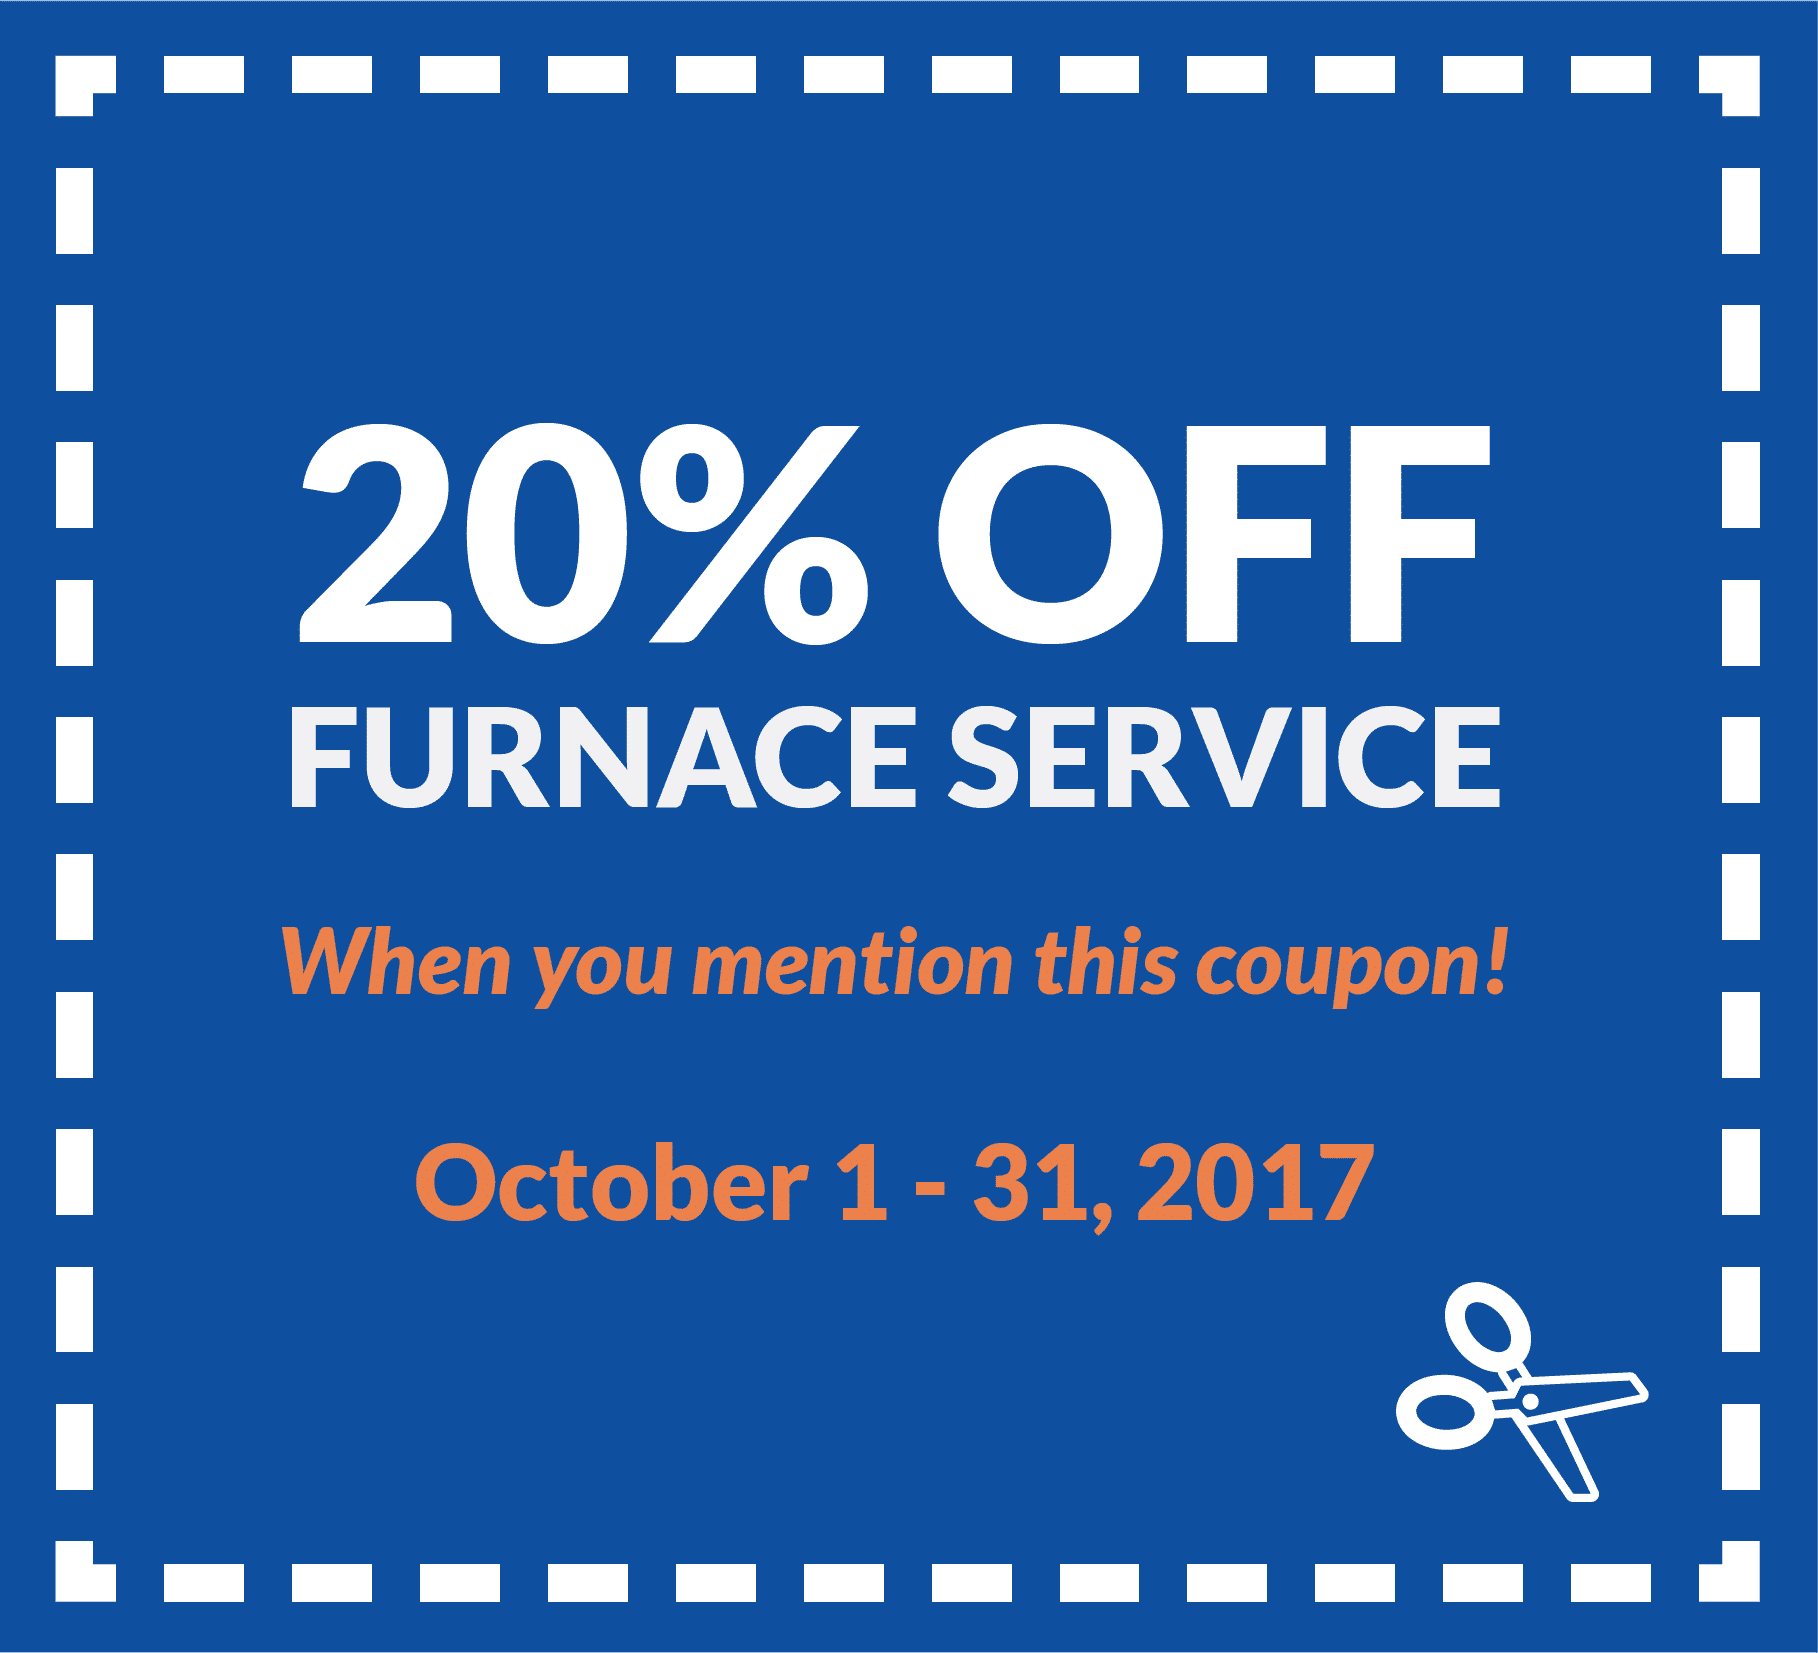 Coupon for 20% off furnace service, when you mention this coupon. Valid from October 1 to 31, 2017.